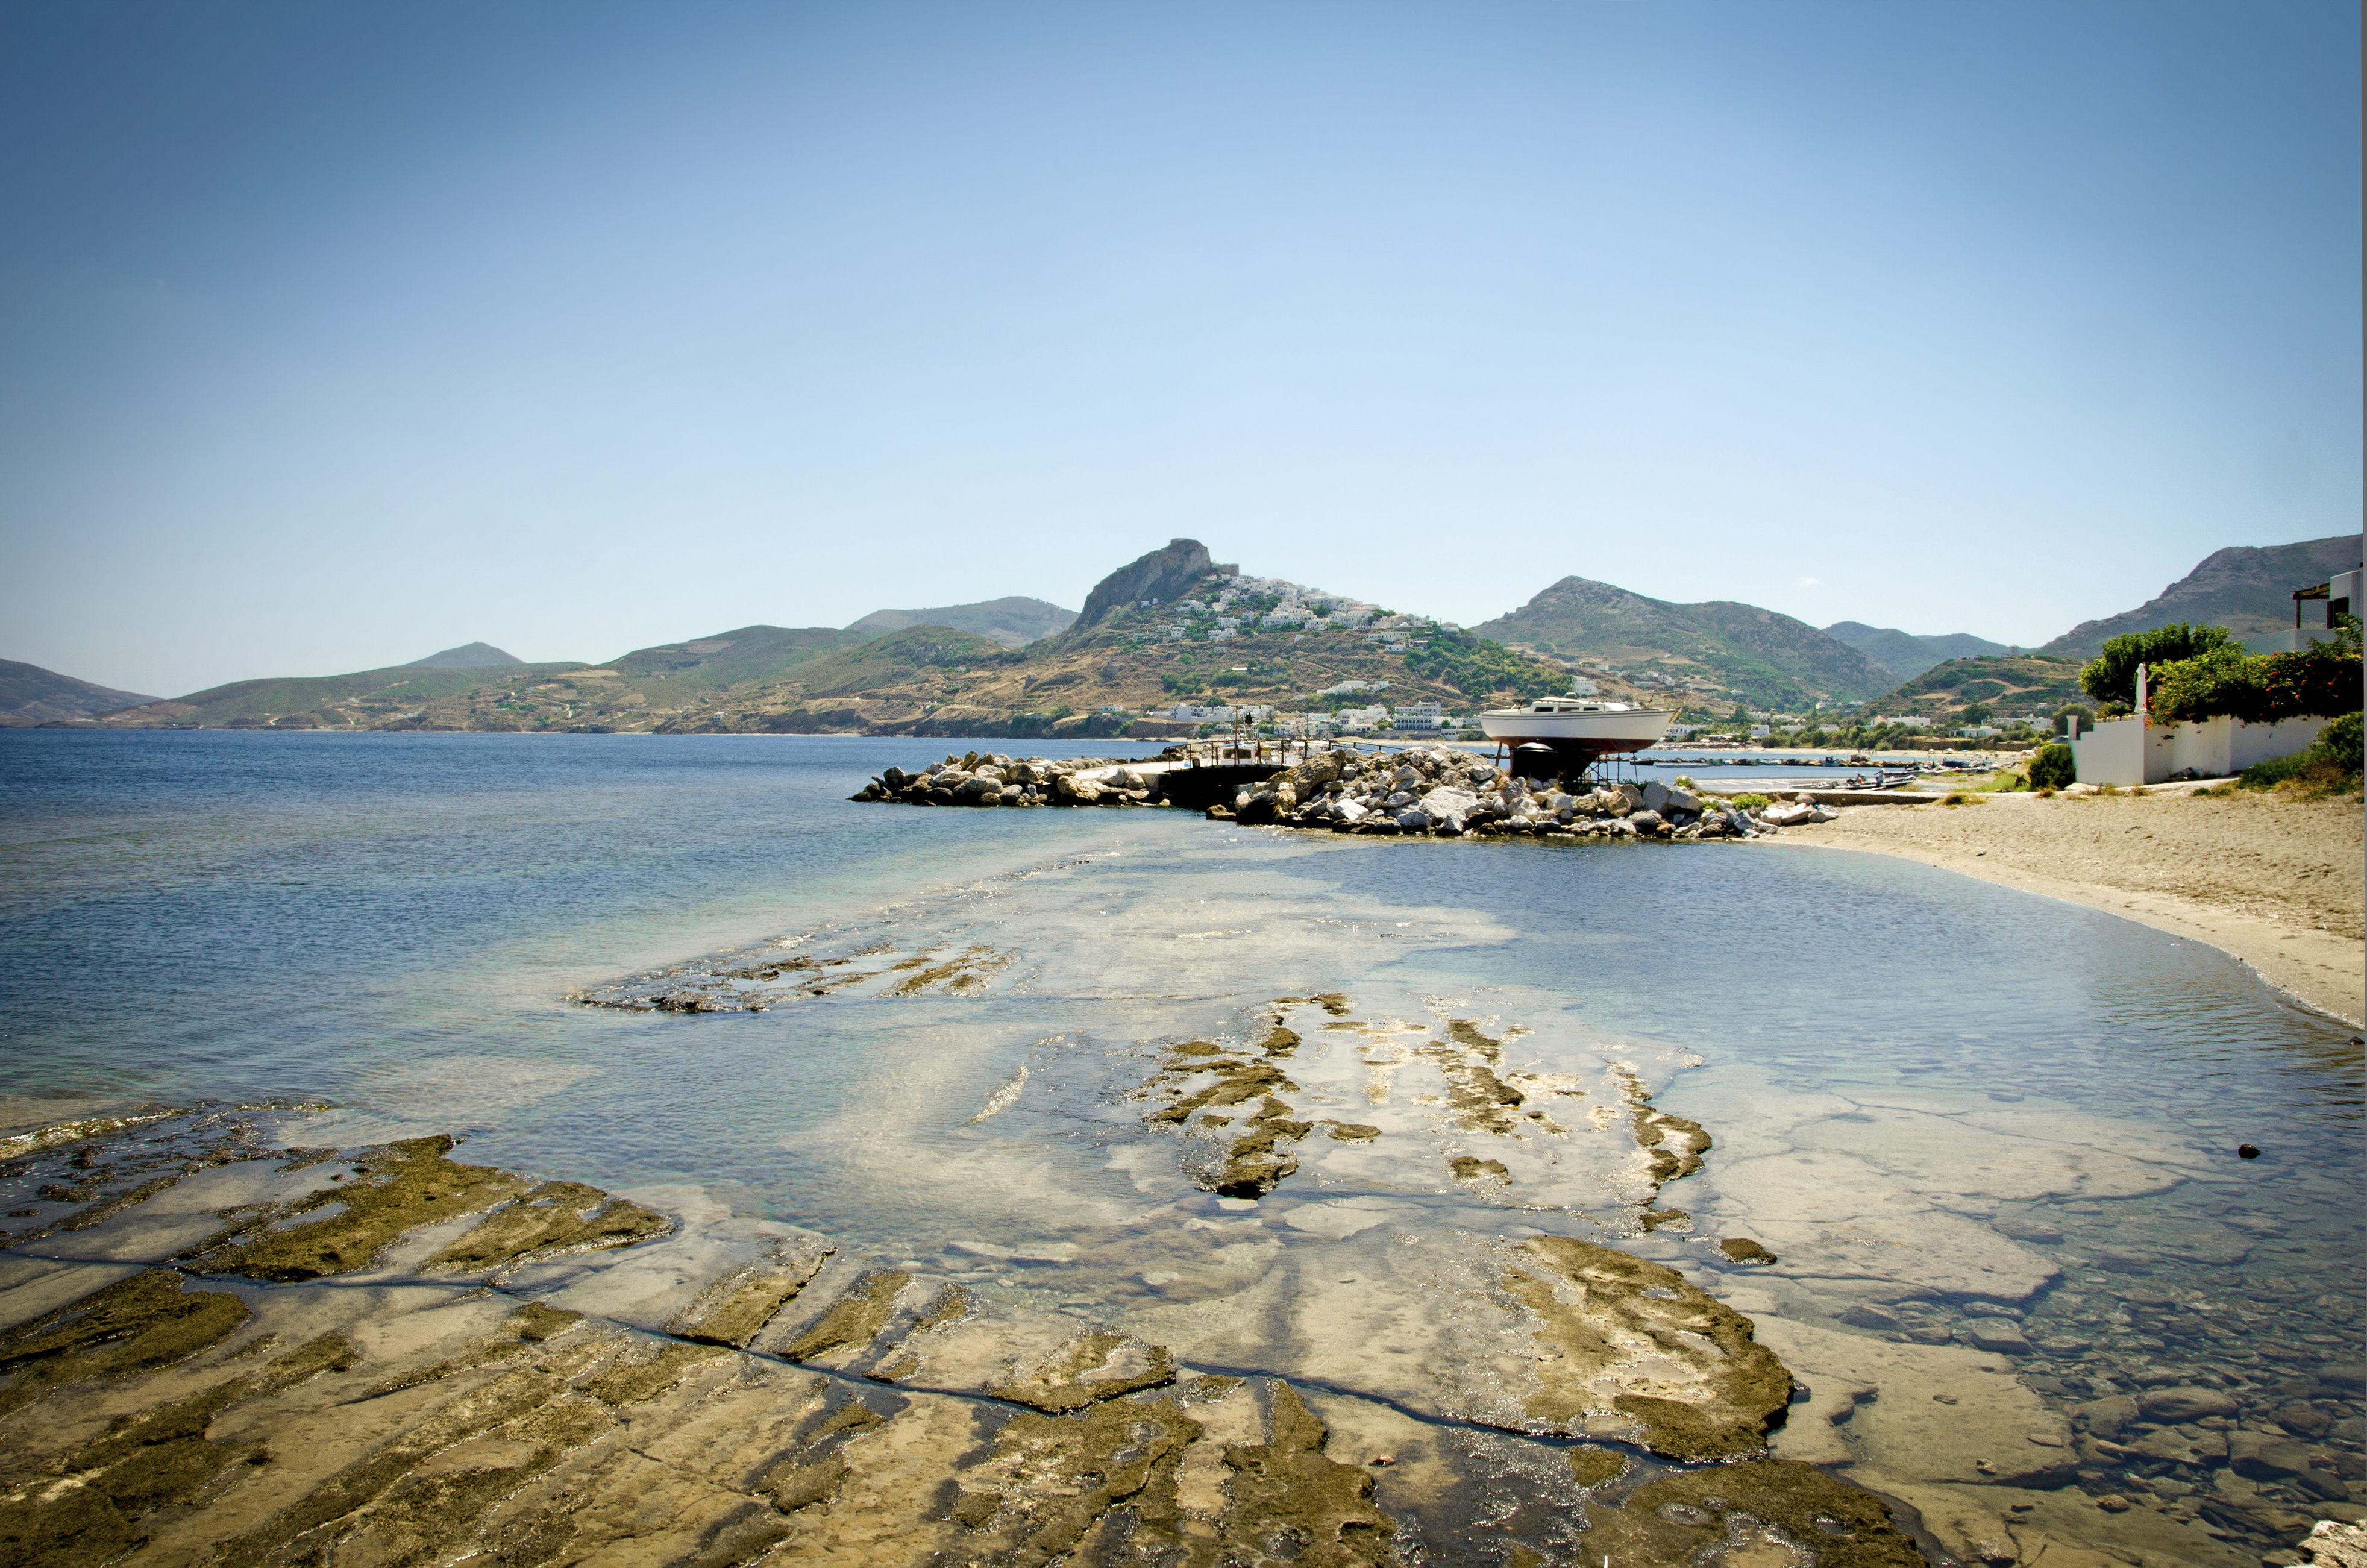 Things To Do When Visiting The Greek Island Skyros